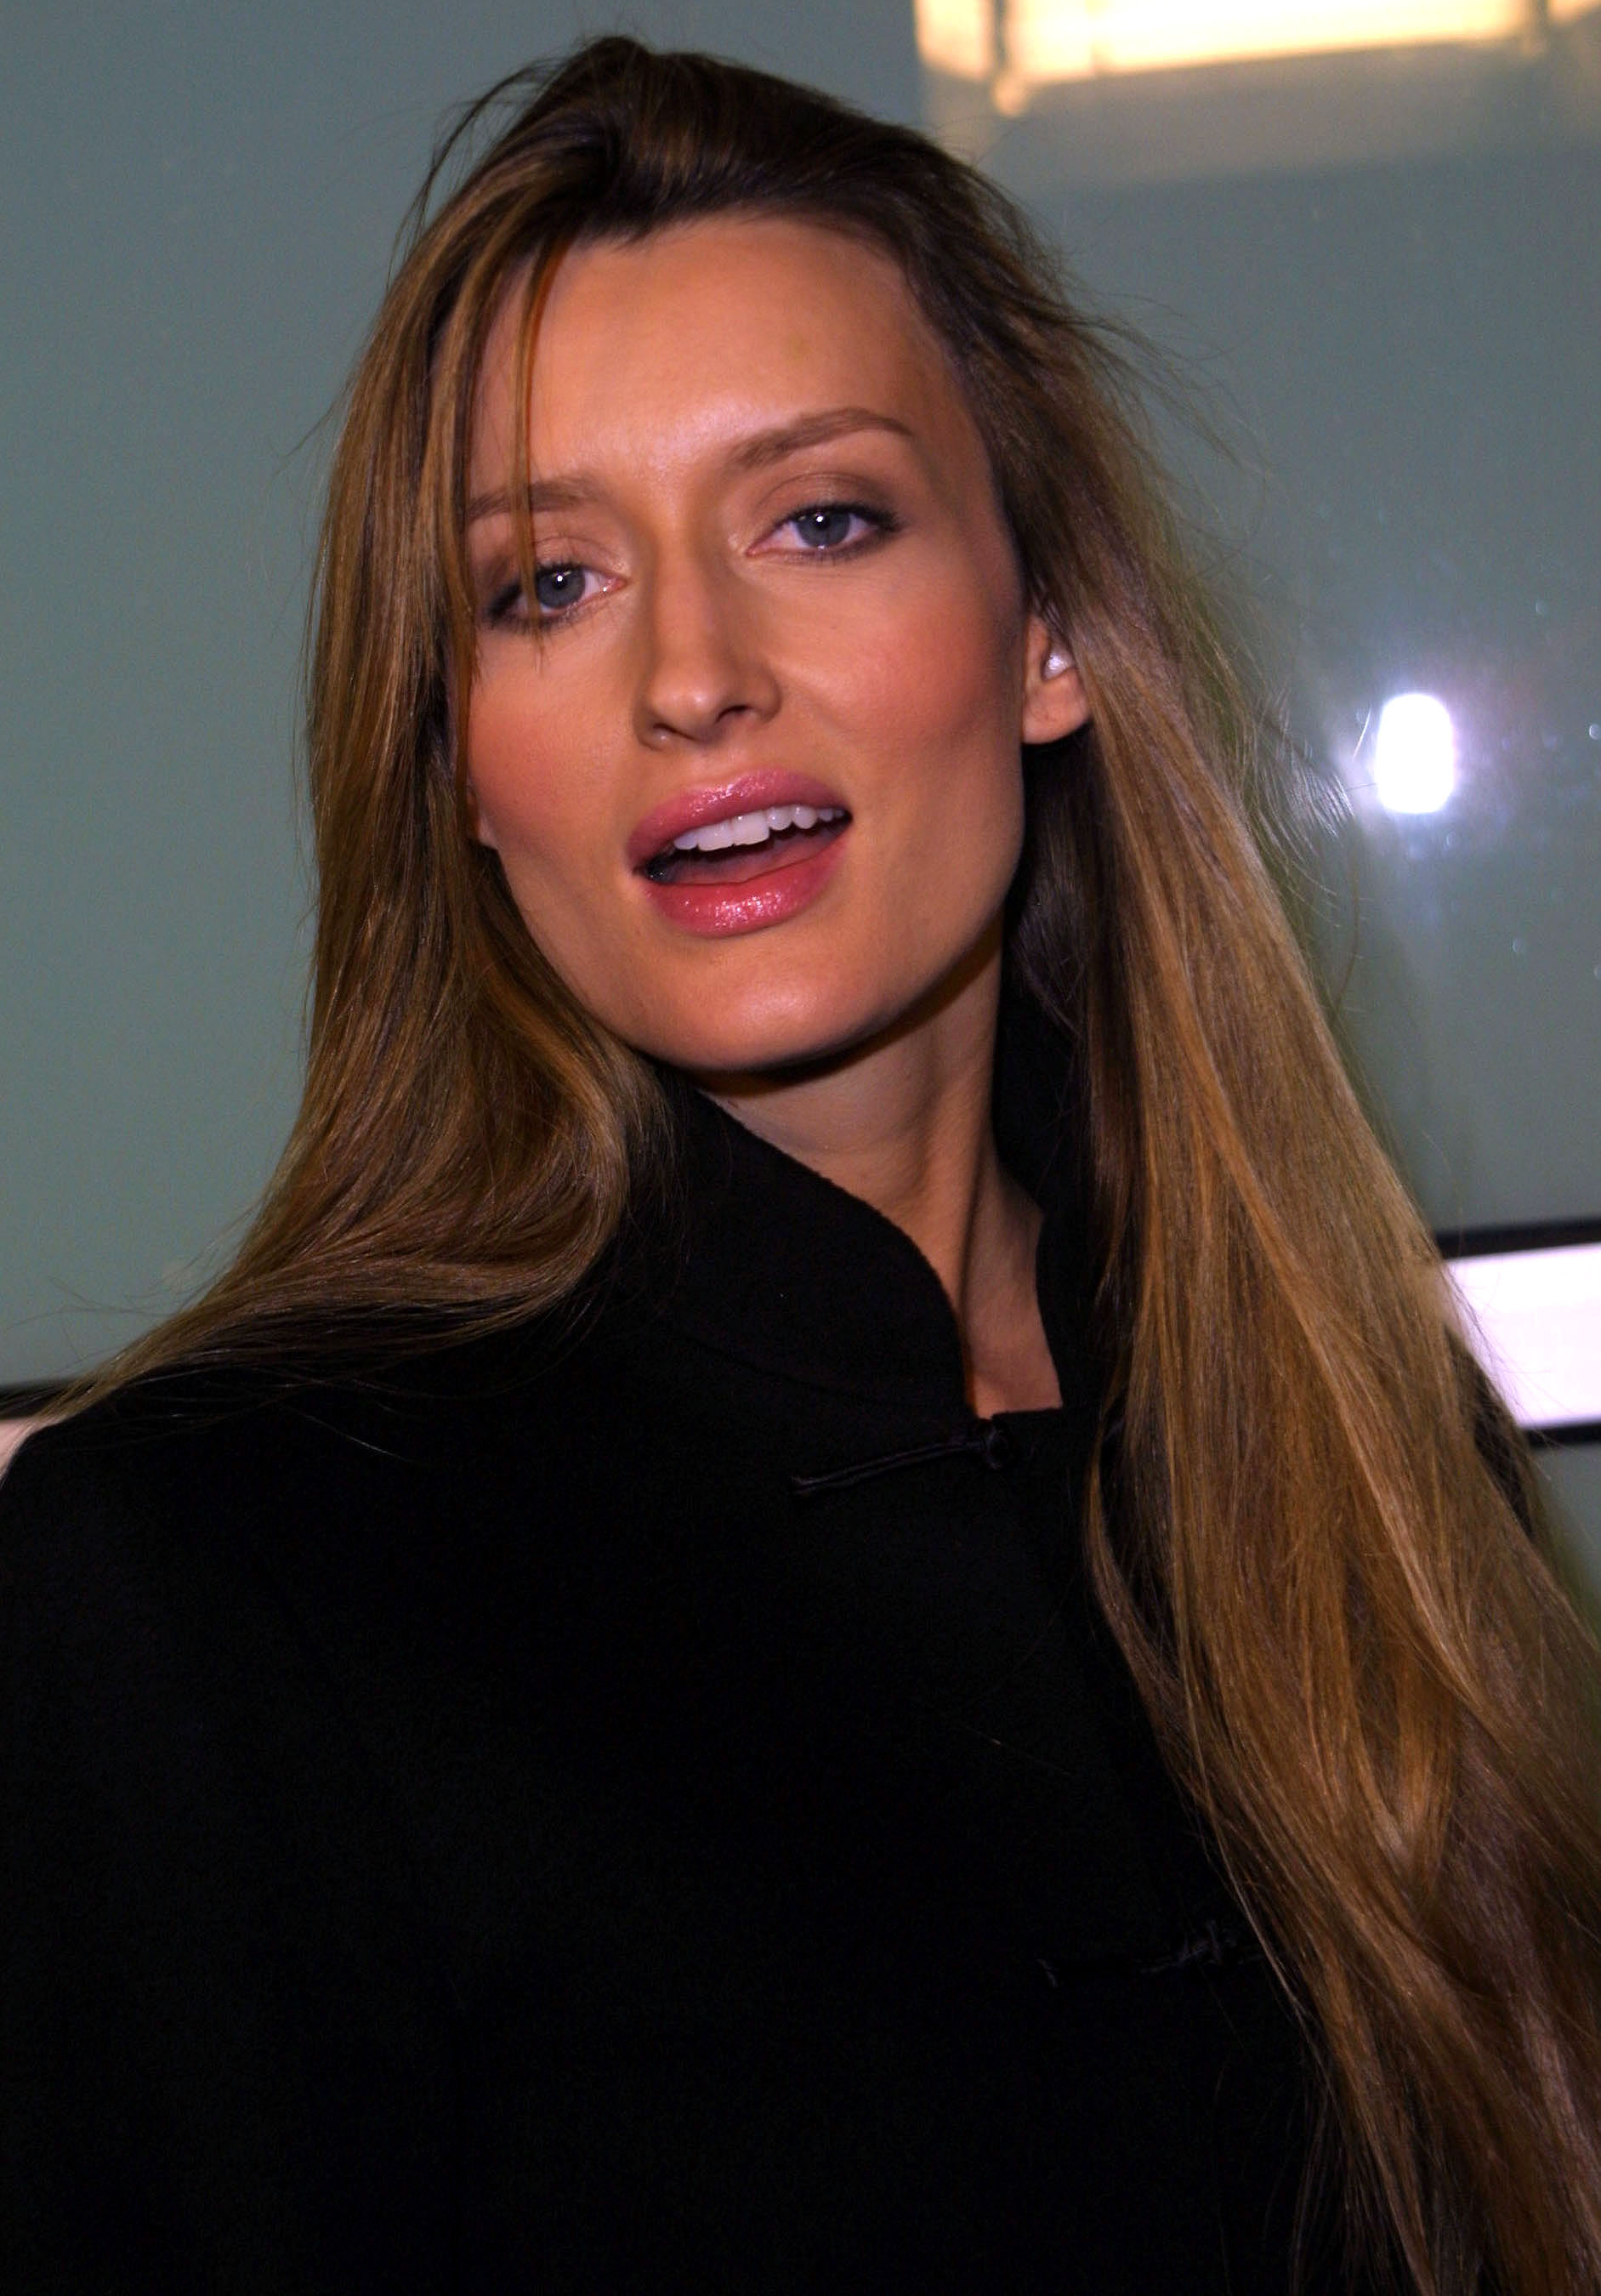 natascha mcelhone photo 44 of 67 pics, wallpaper - photo